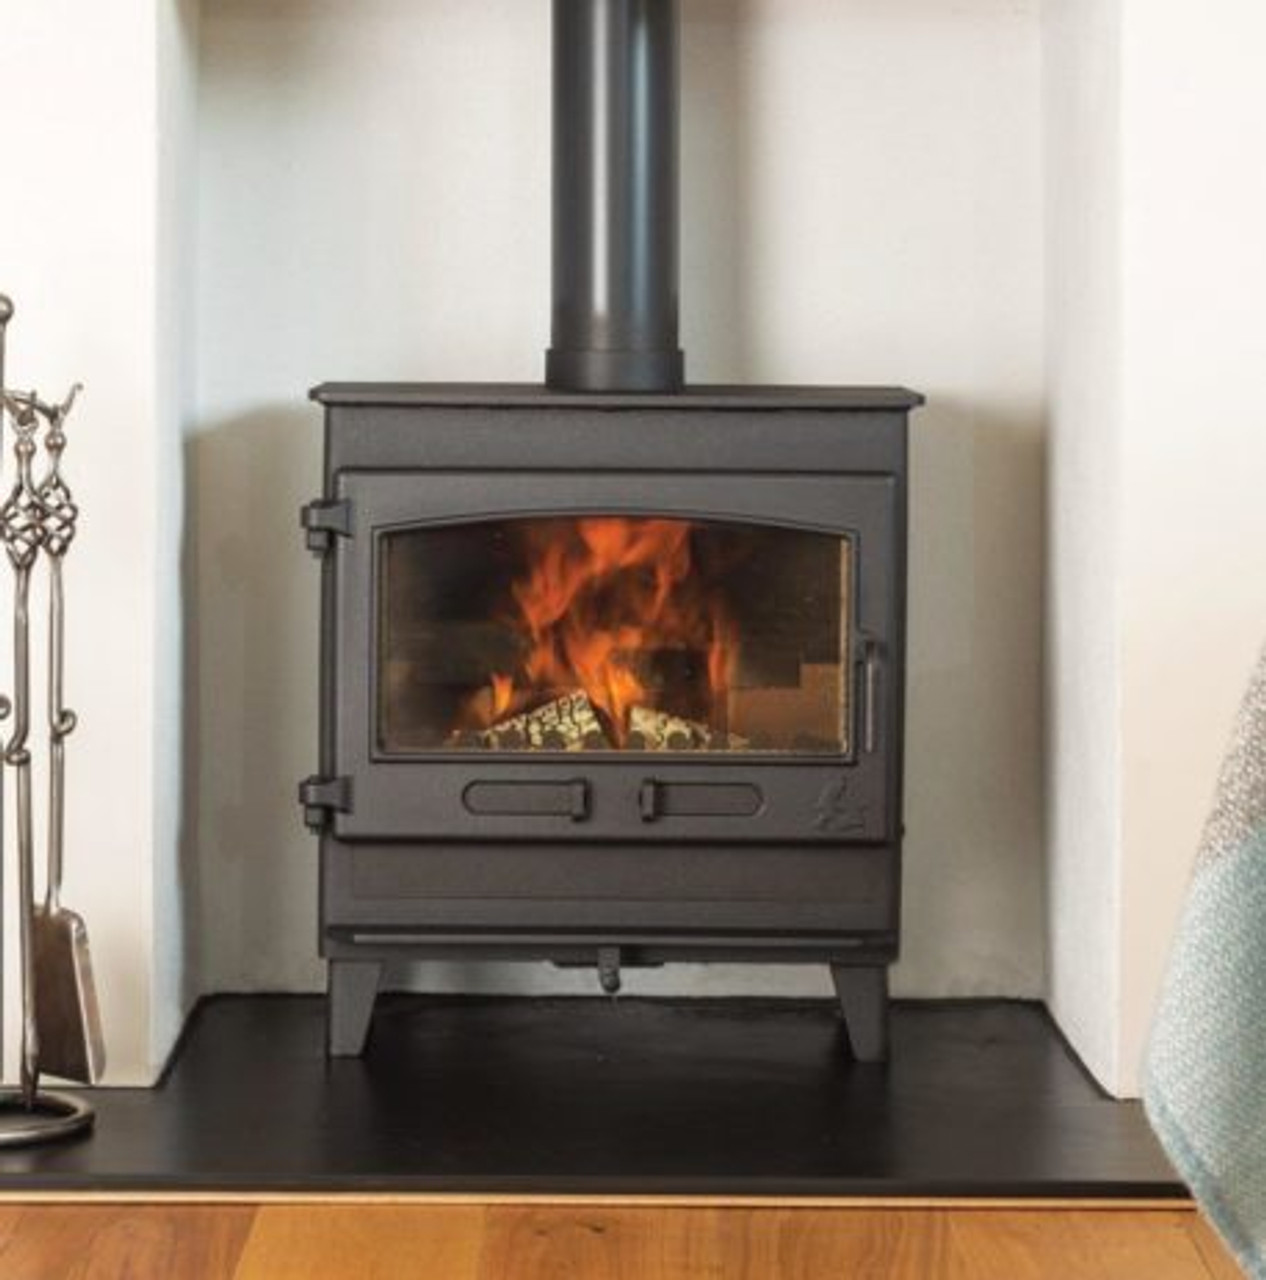 Croft Clearburn Slimline 5 Se Stove from £1199.00